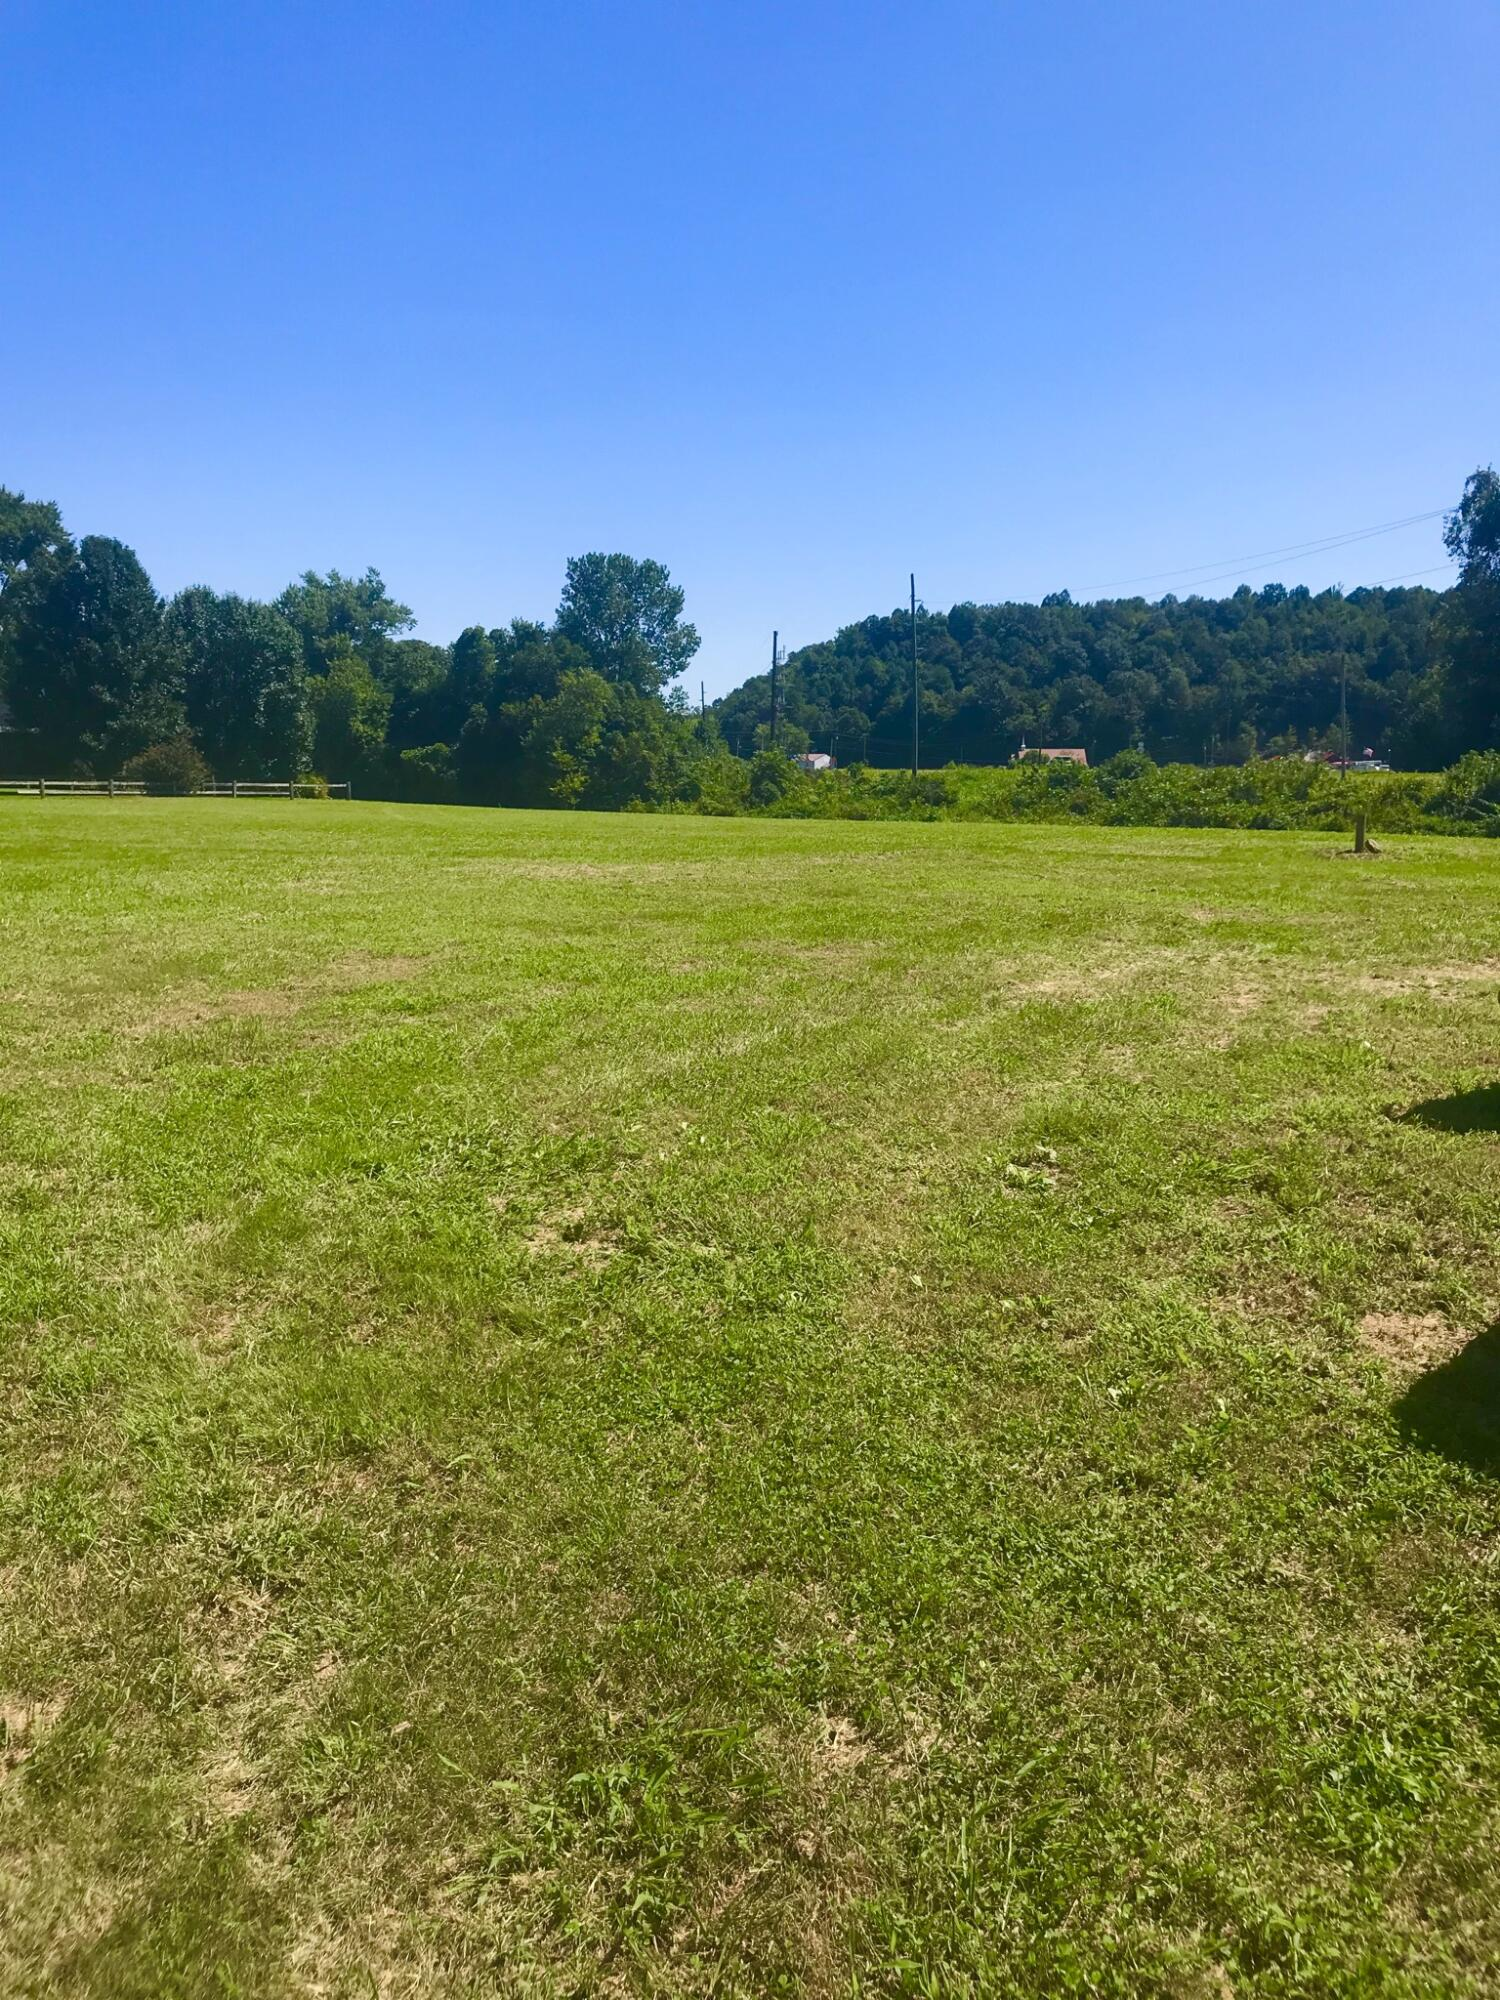 8060 old us 60 west, Morehead, KY 40351